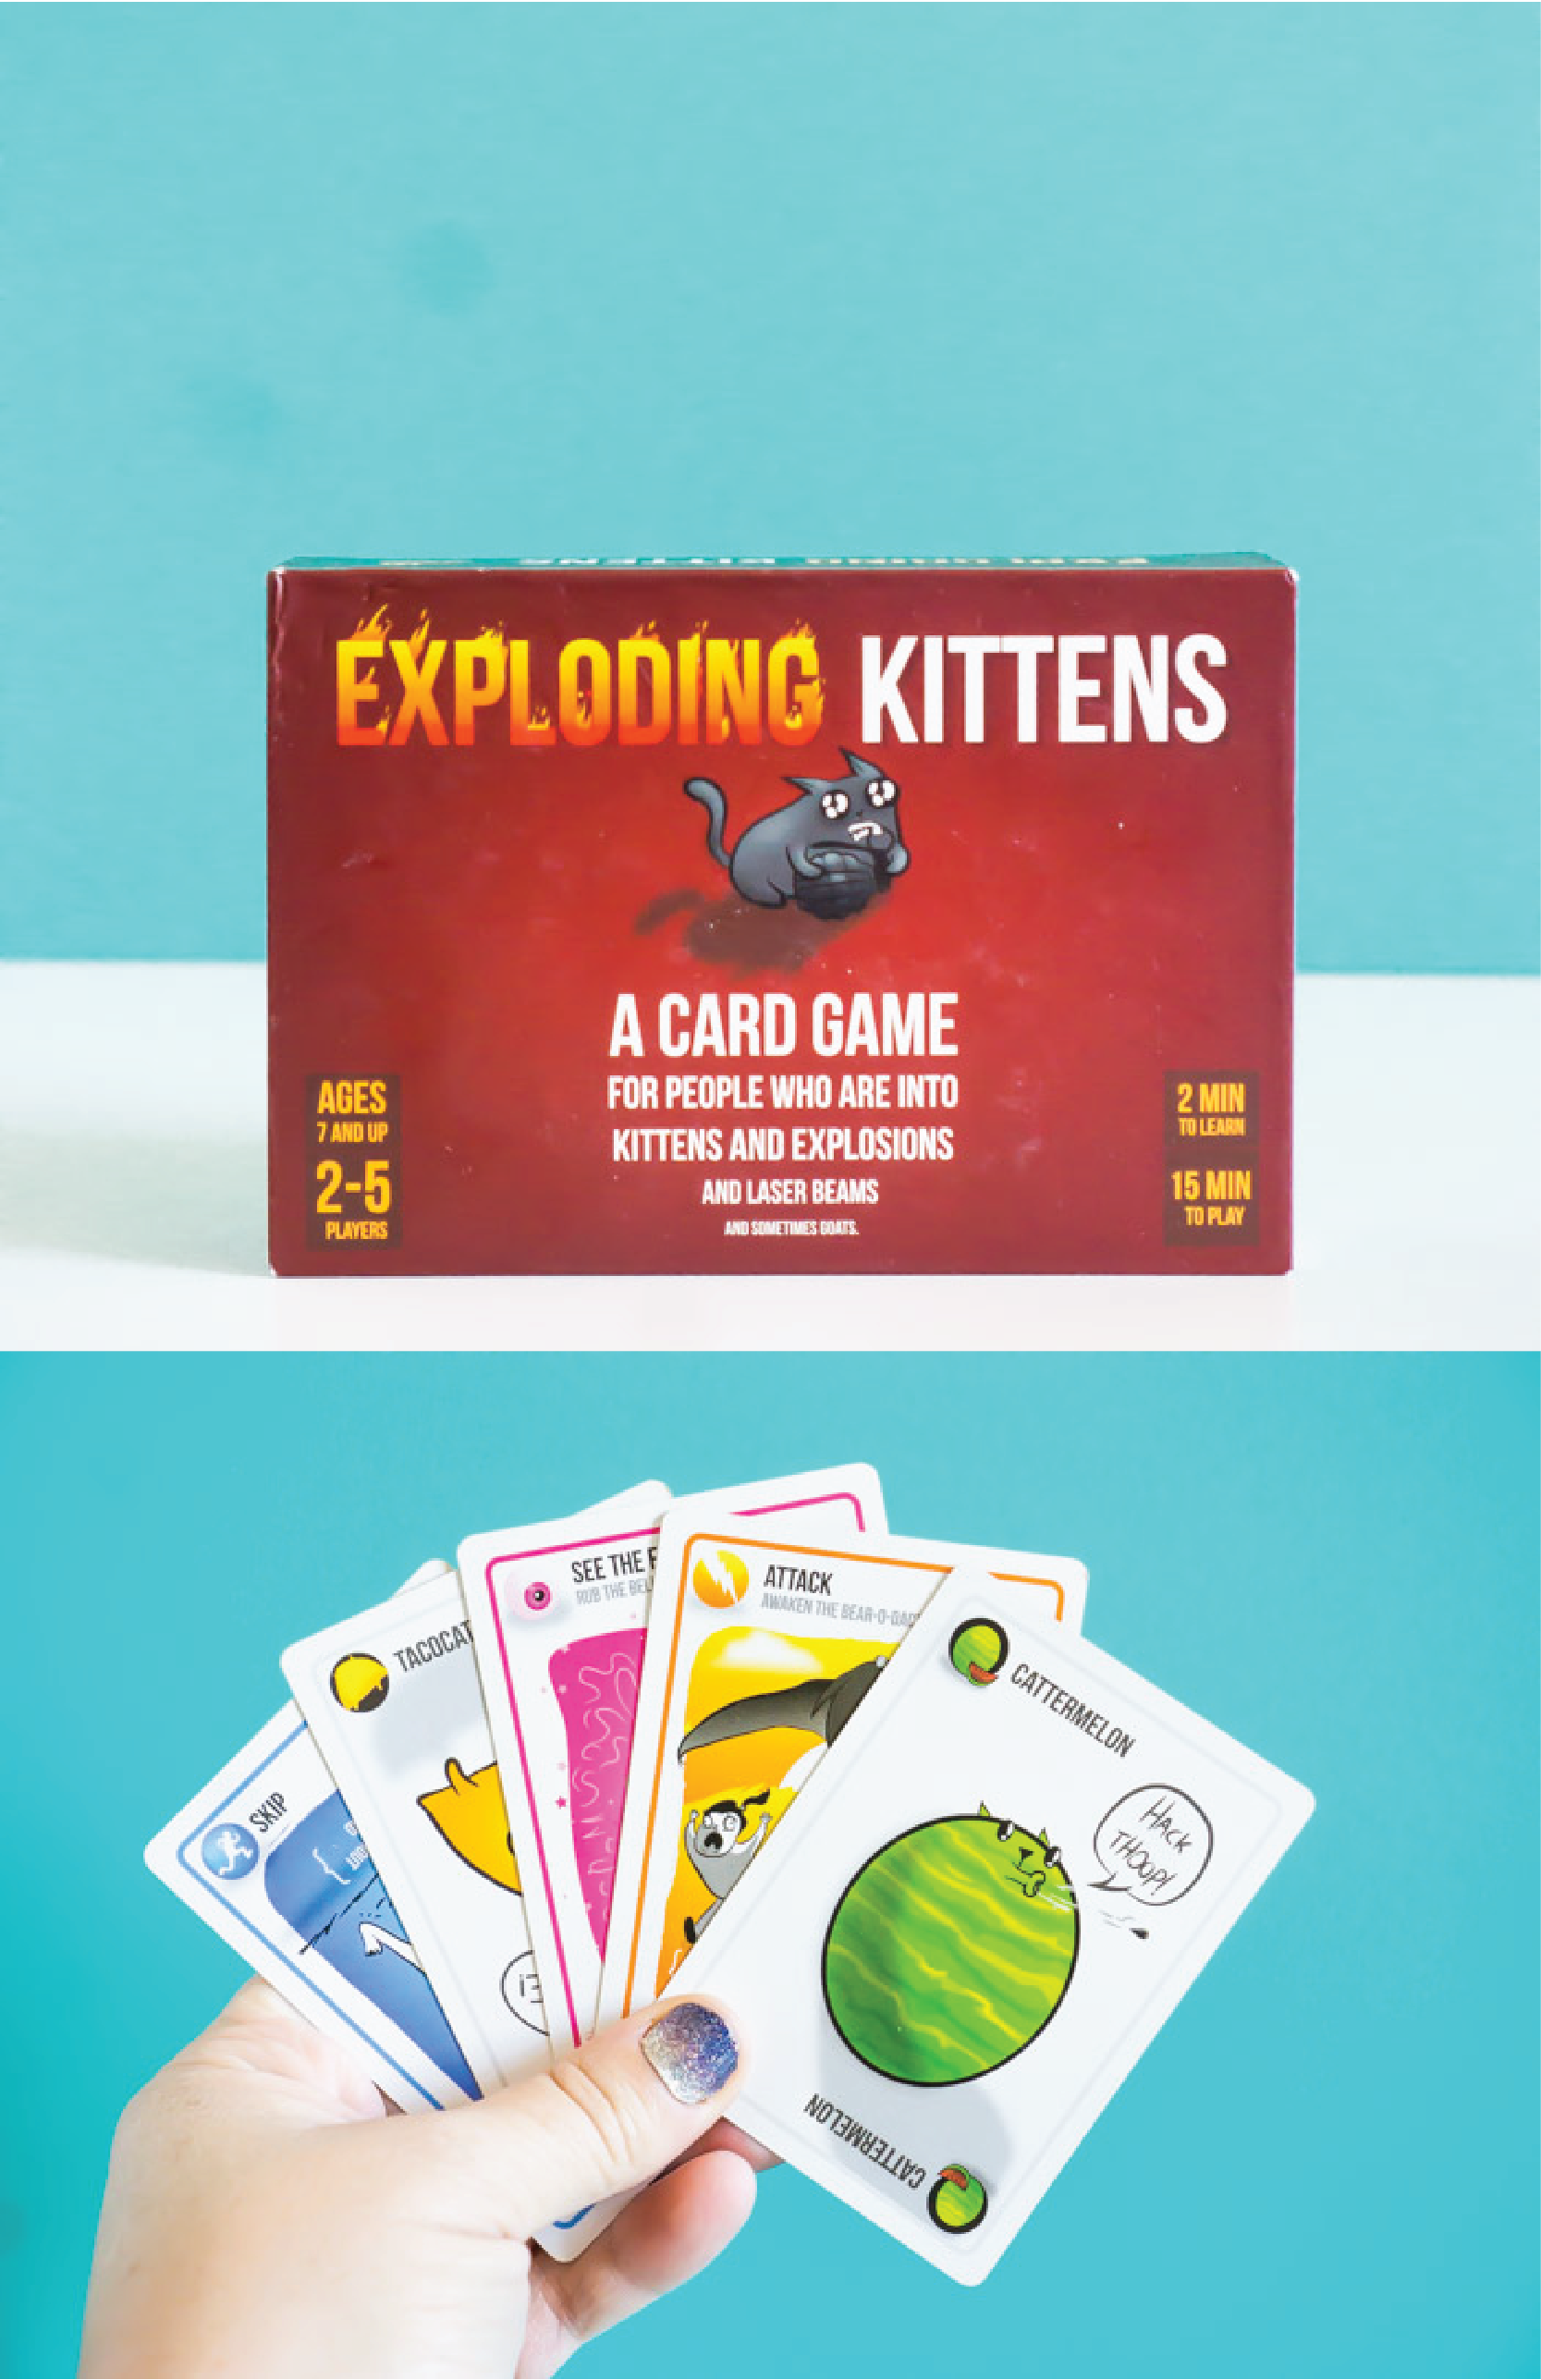 Exploding Kittens is one of the most fast-paced board games for adults